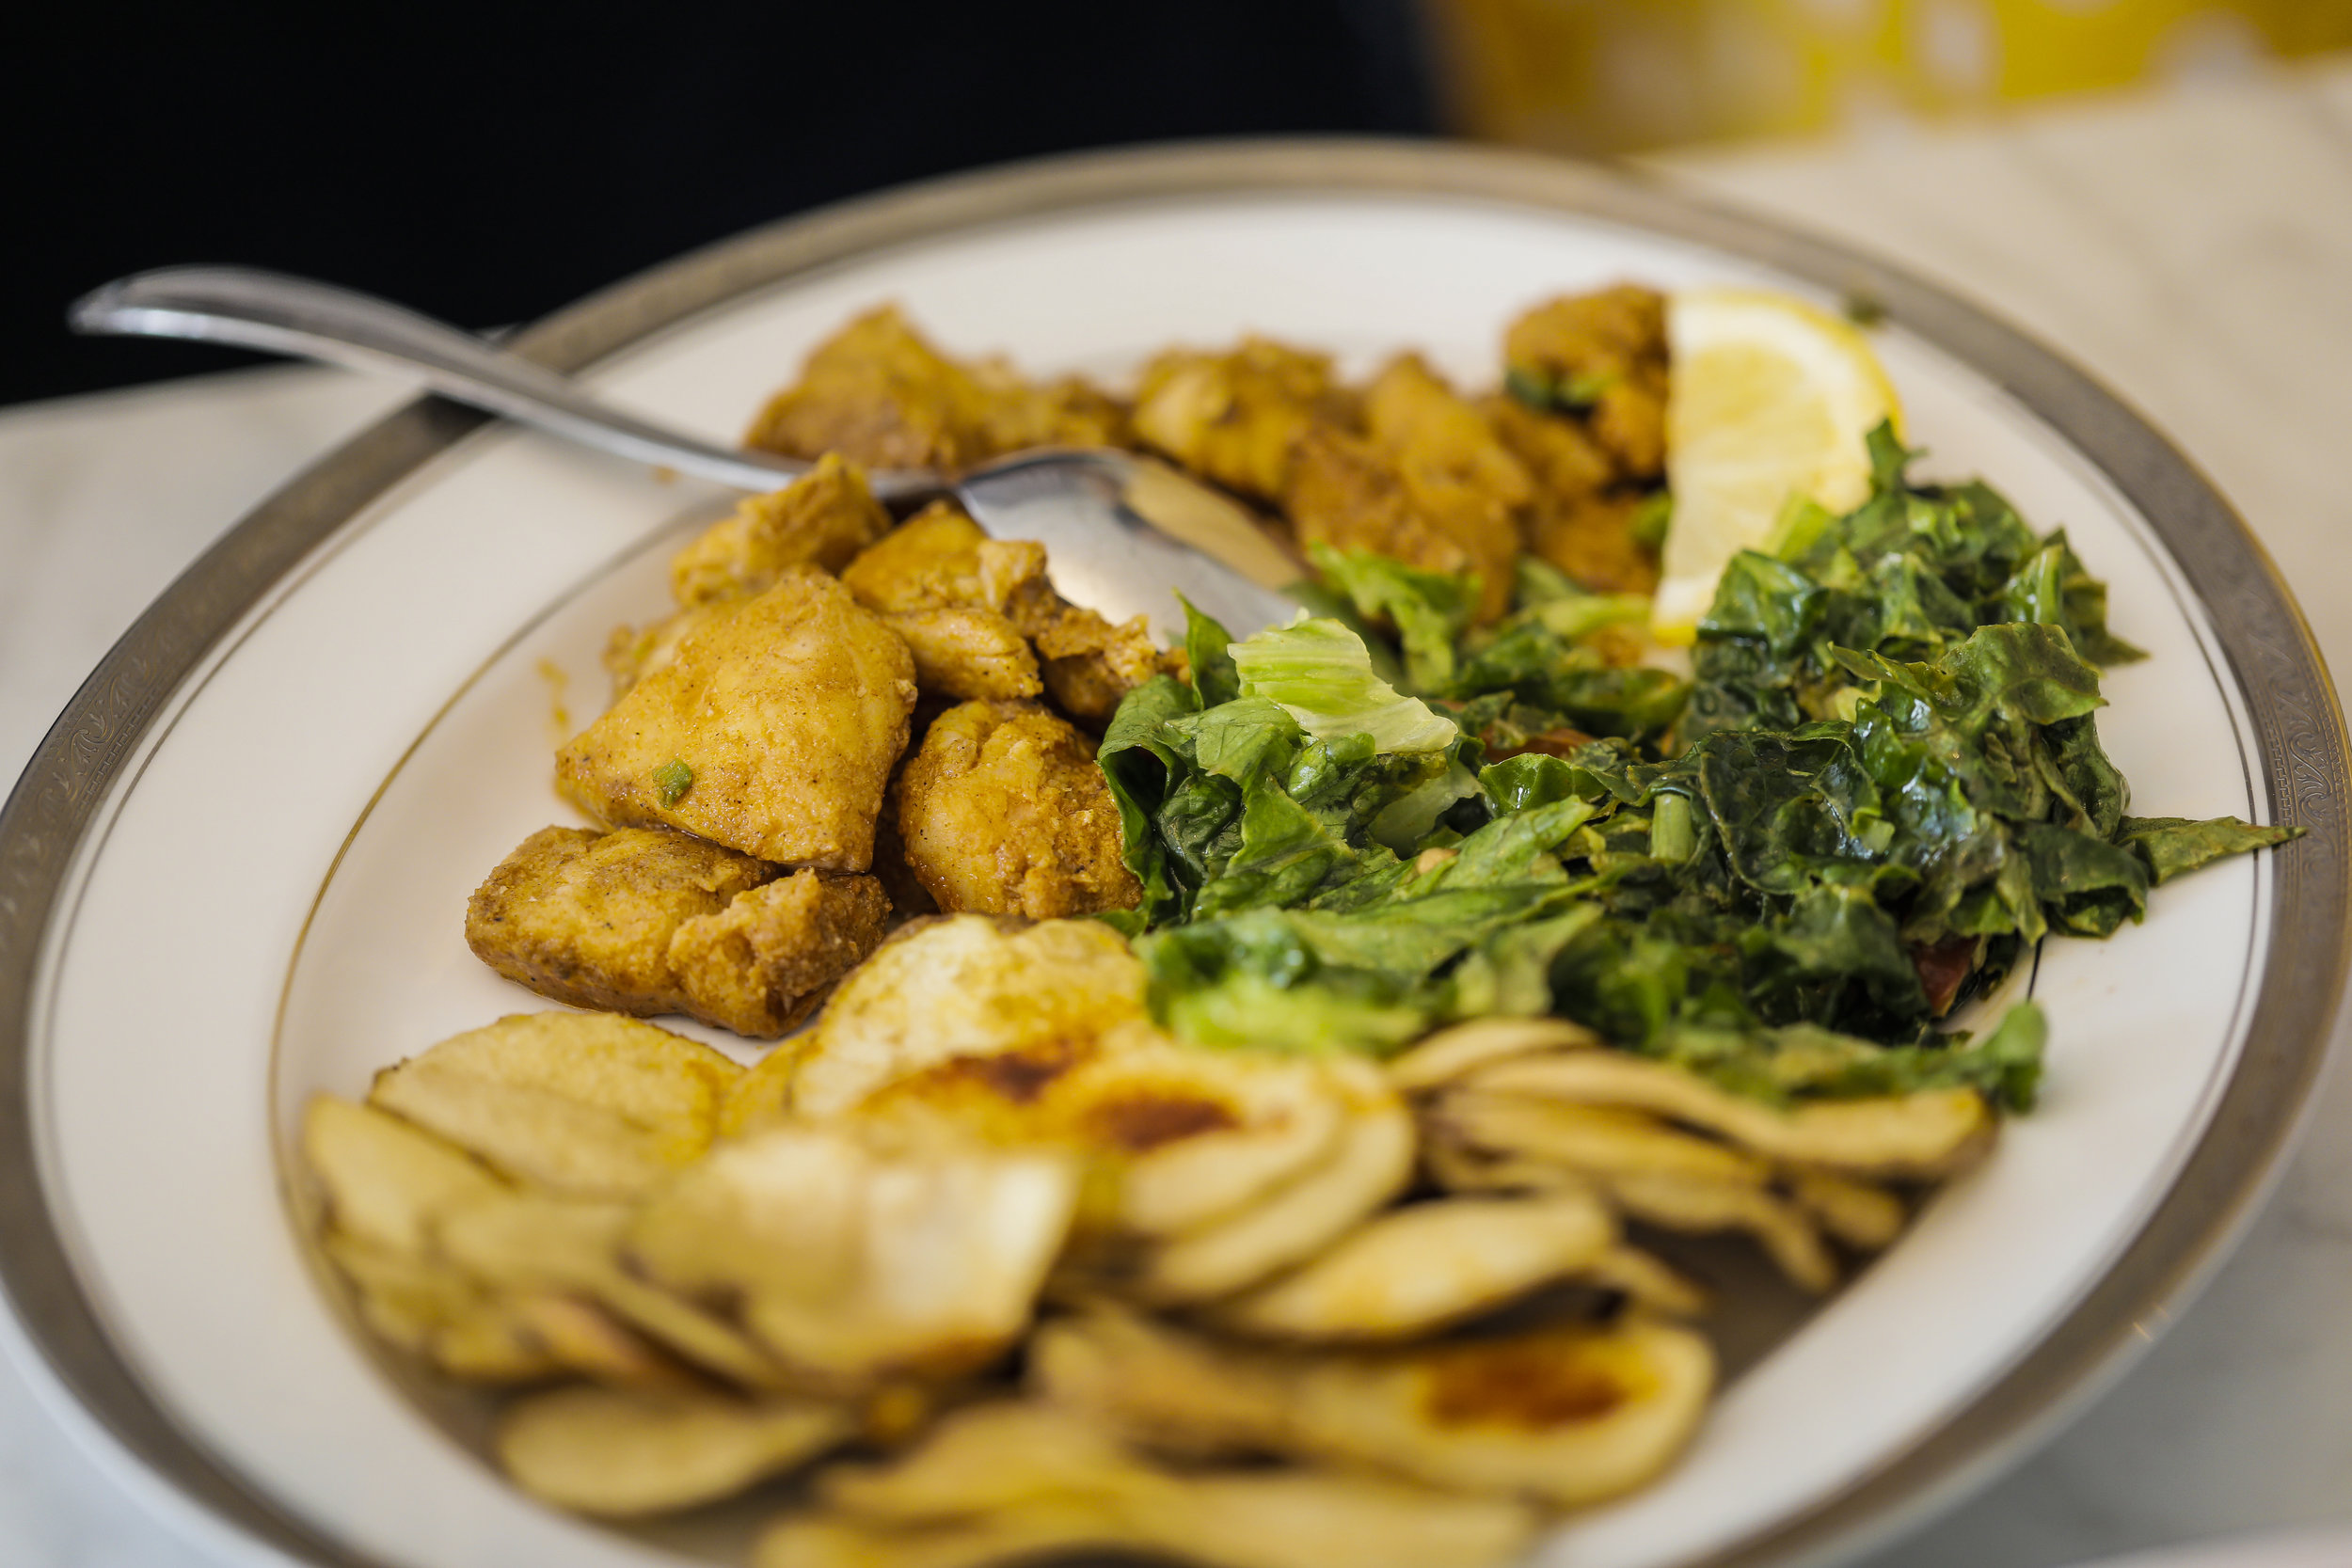 Tibsi/Kulwa: made of fish with accompanied greens and chips